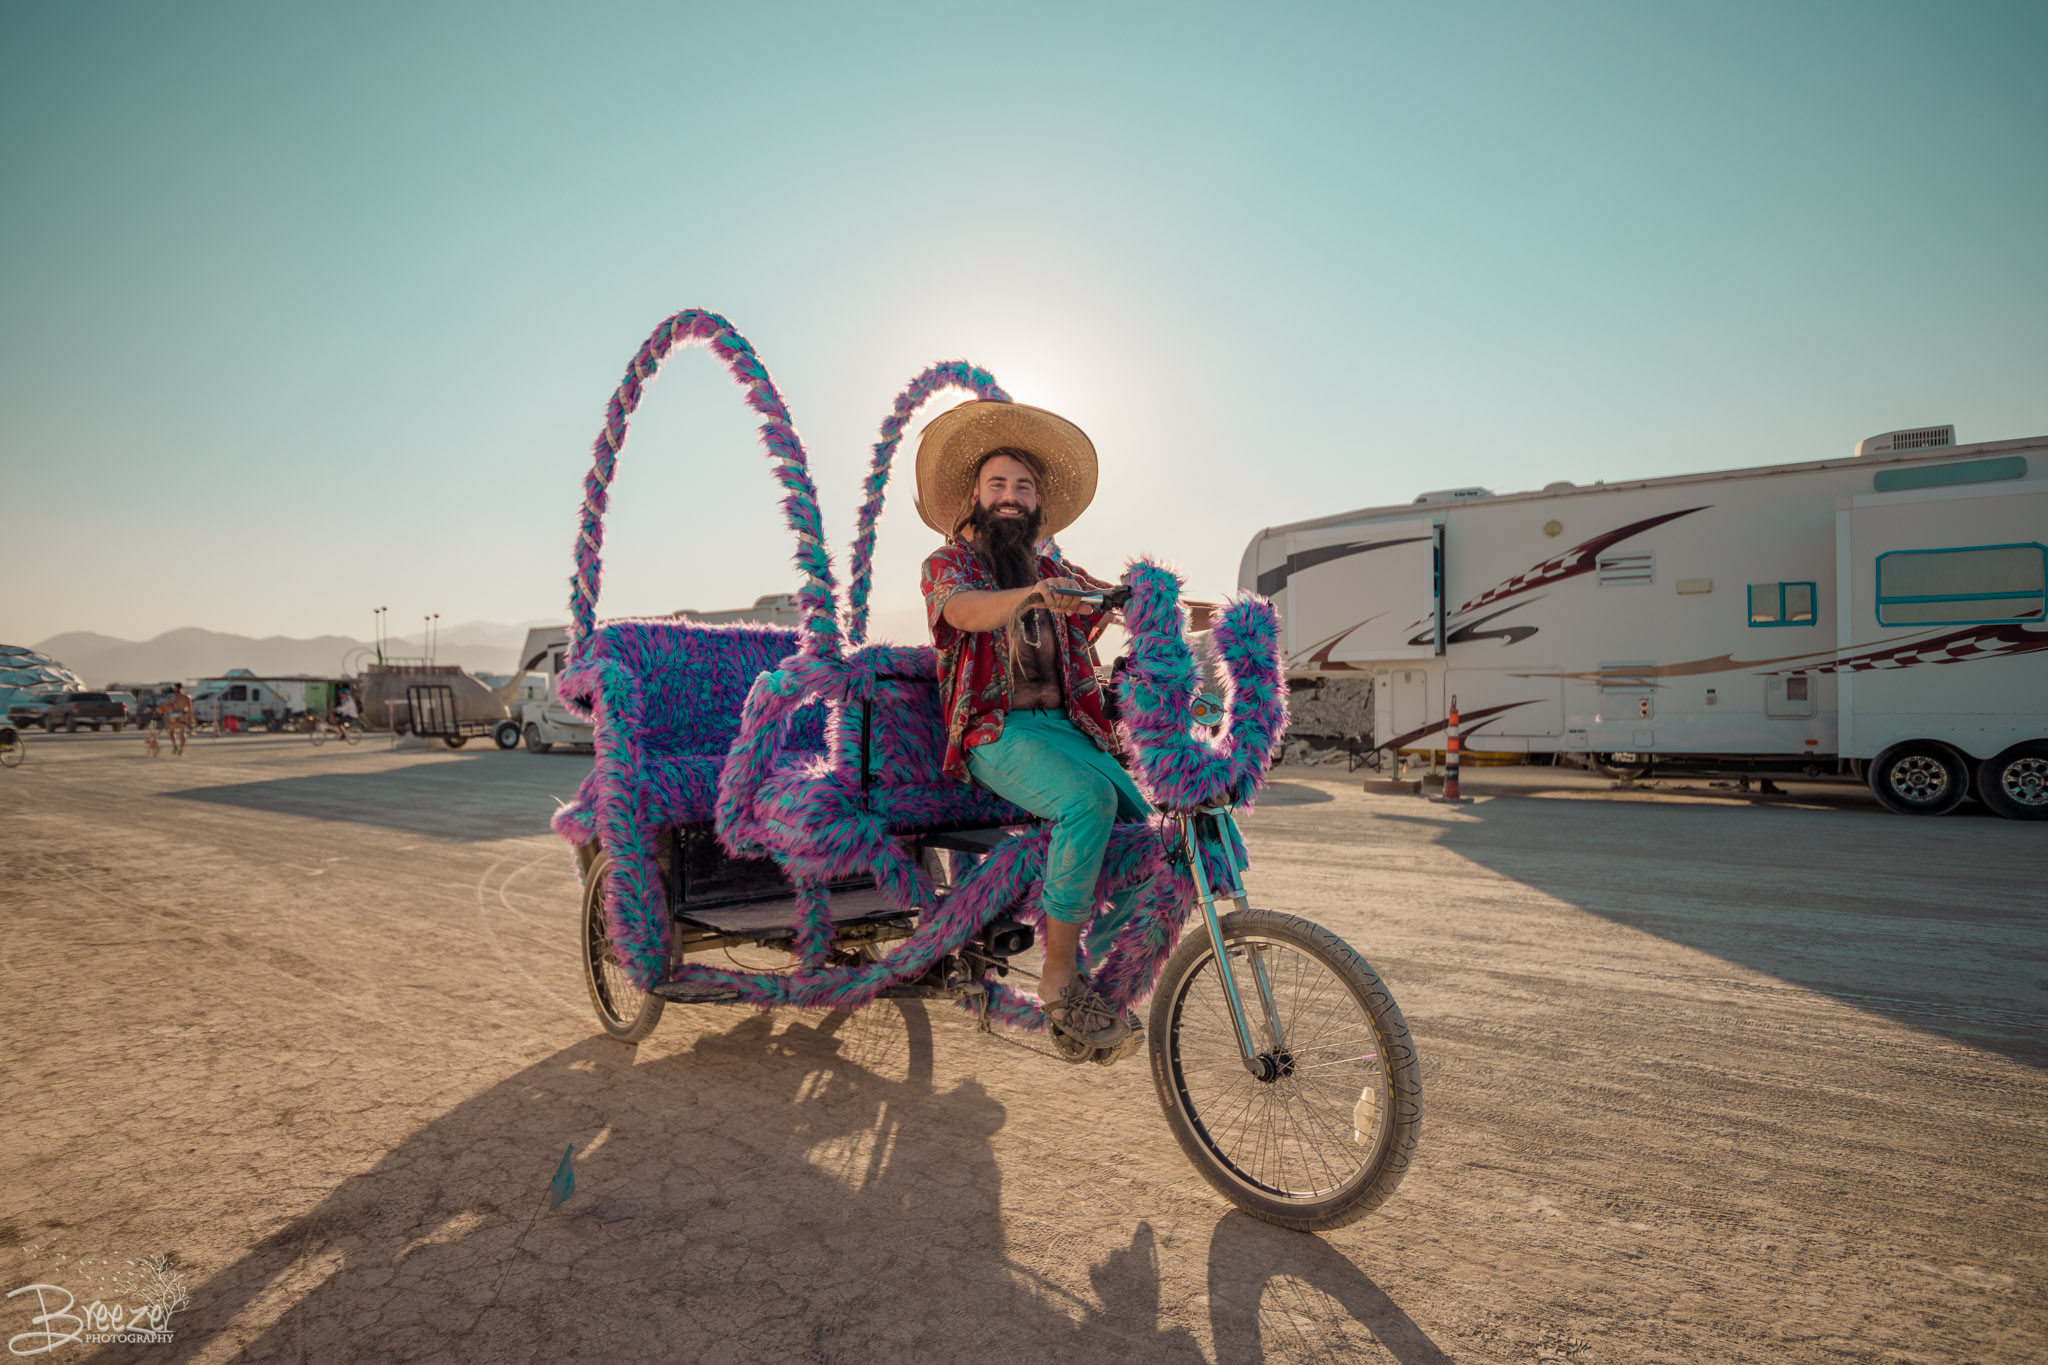 Brie'Ana Breeze Photography & Media - Burning Man 2018--3444.jpg